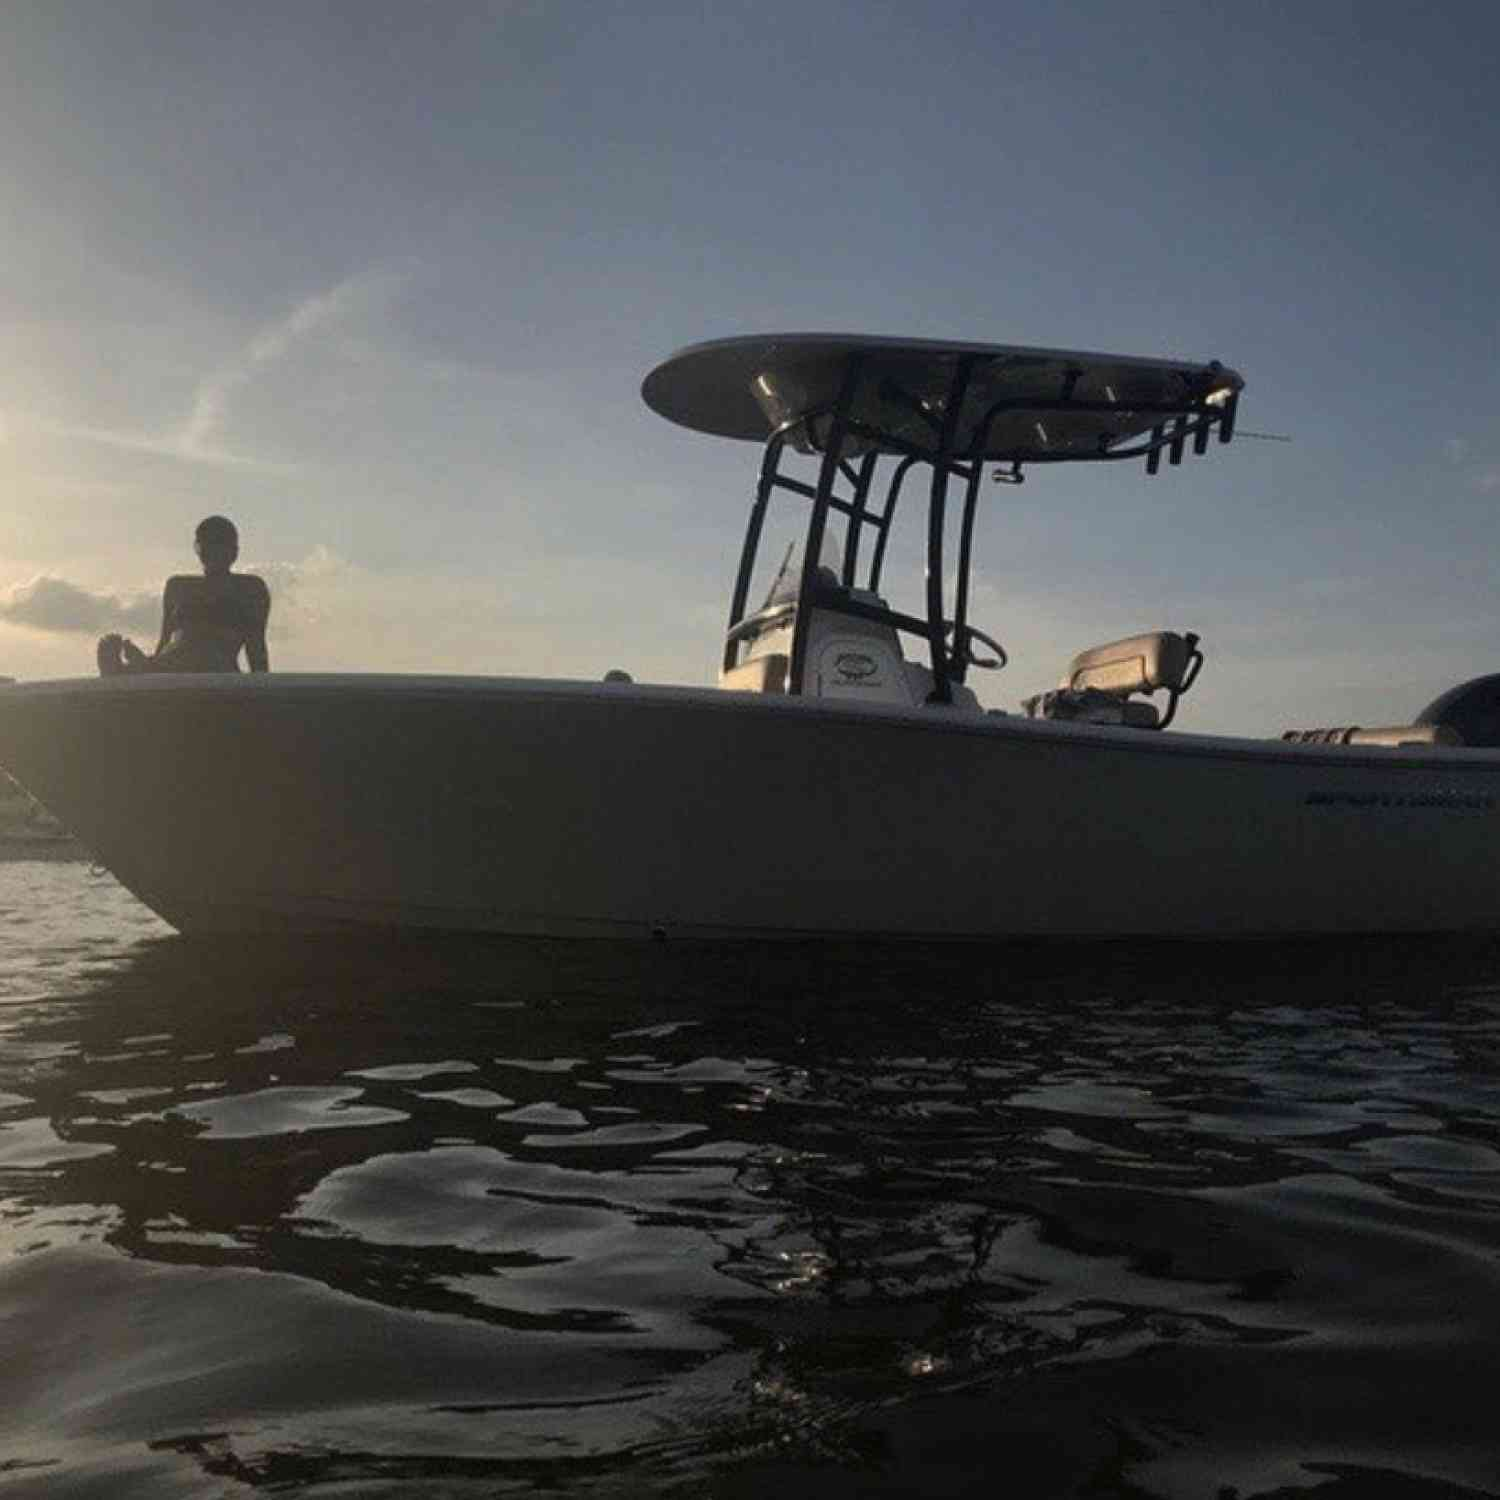 Title: Sunset - On board their Sportsman Heritage 211 Center Console - Location: Charleston, SC. Participating in the Photo Contest #SportsmanAugust2020